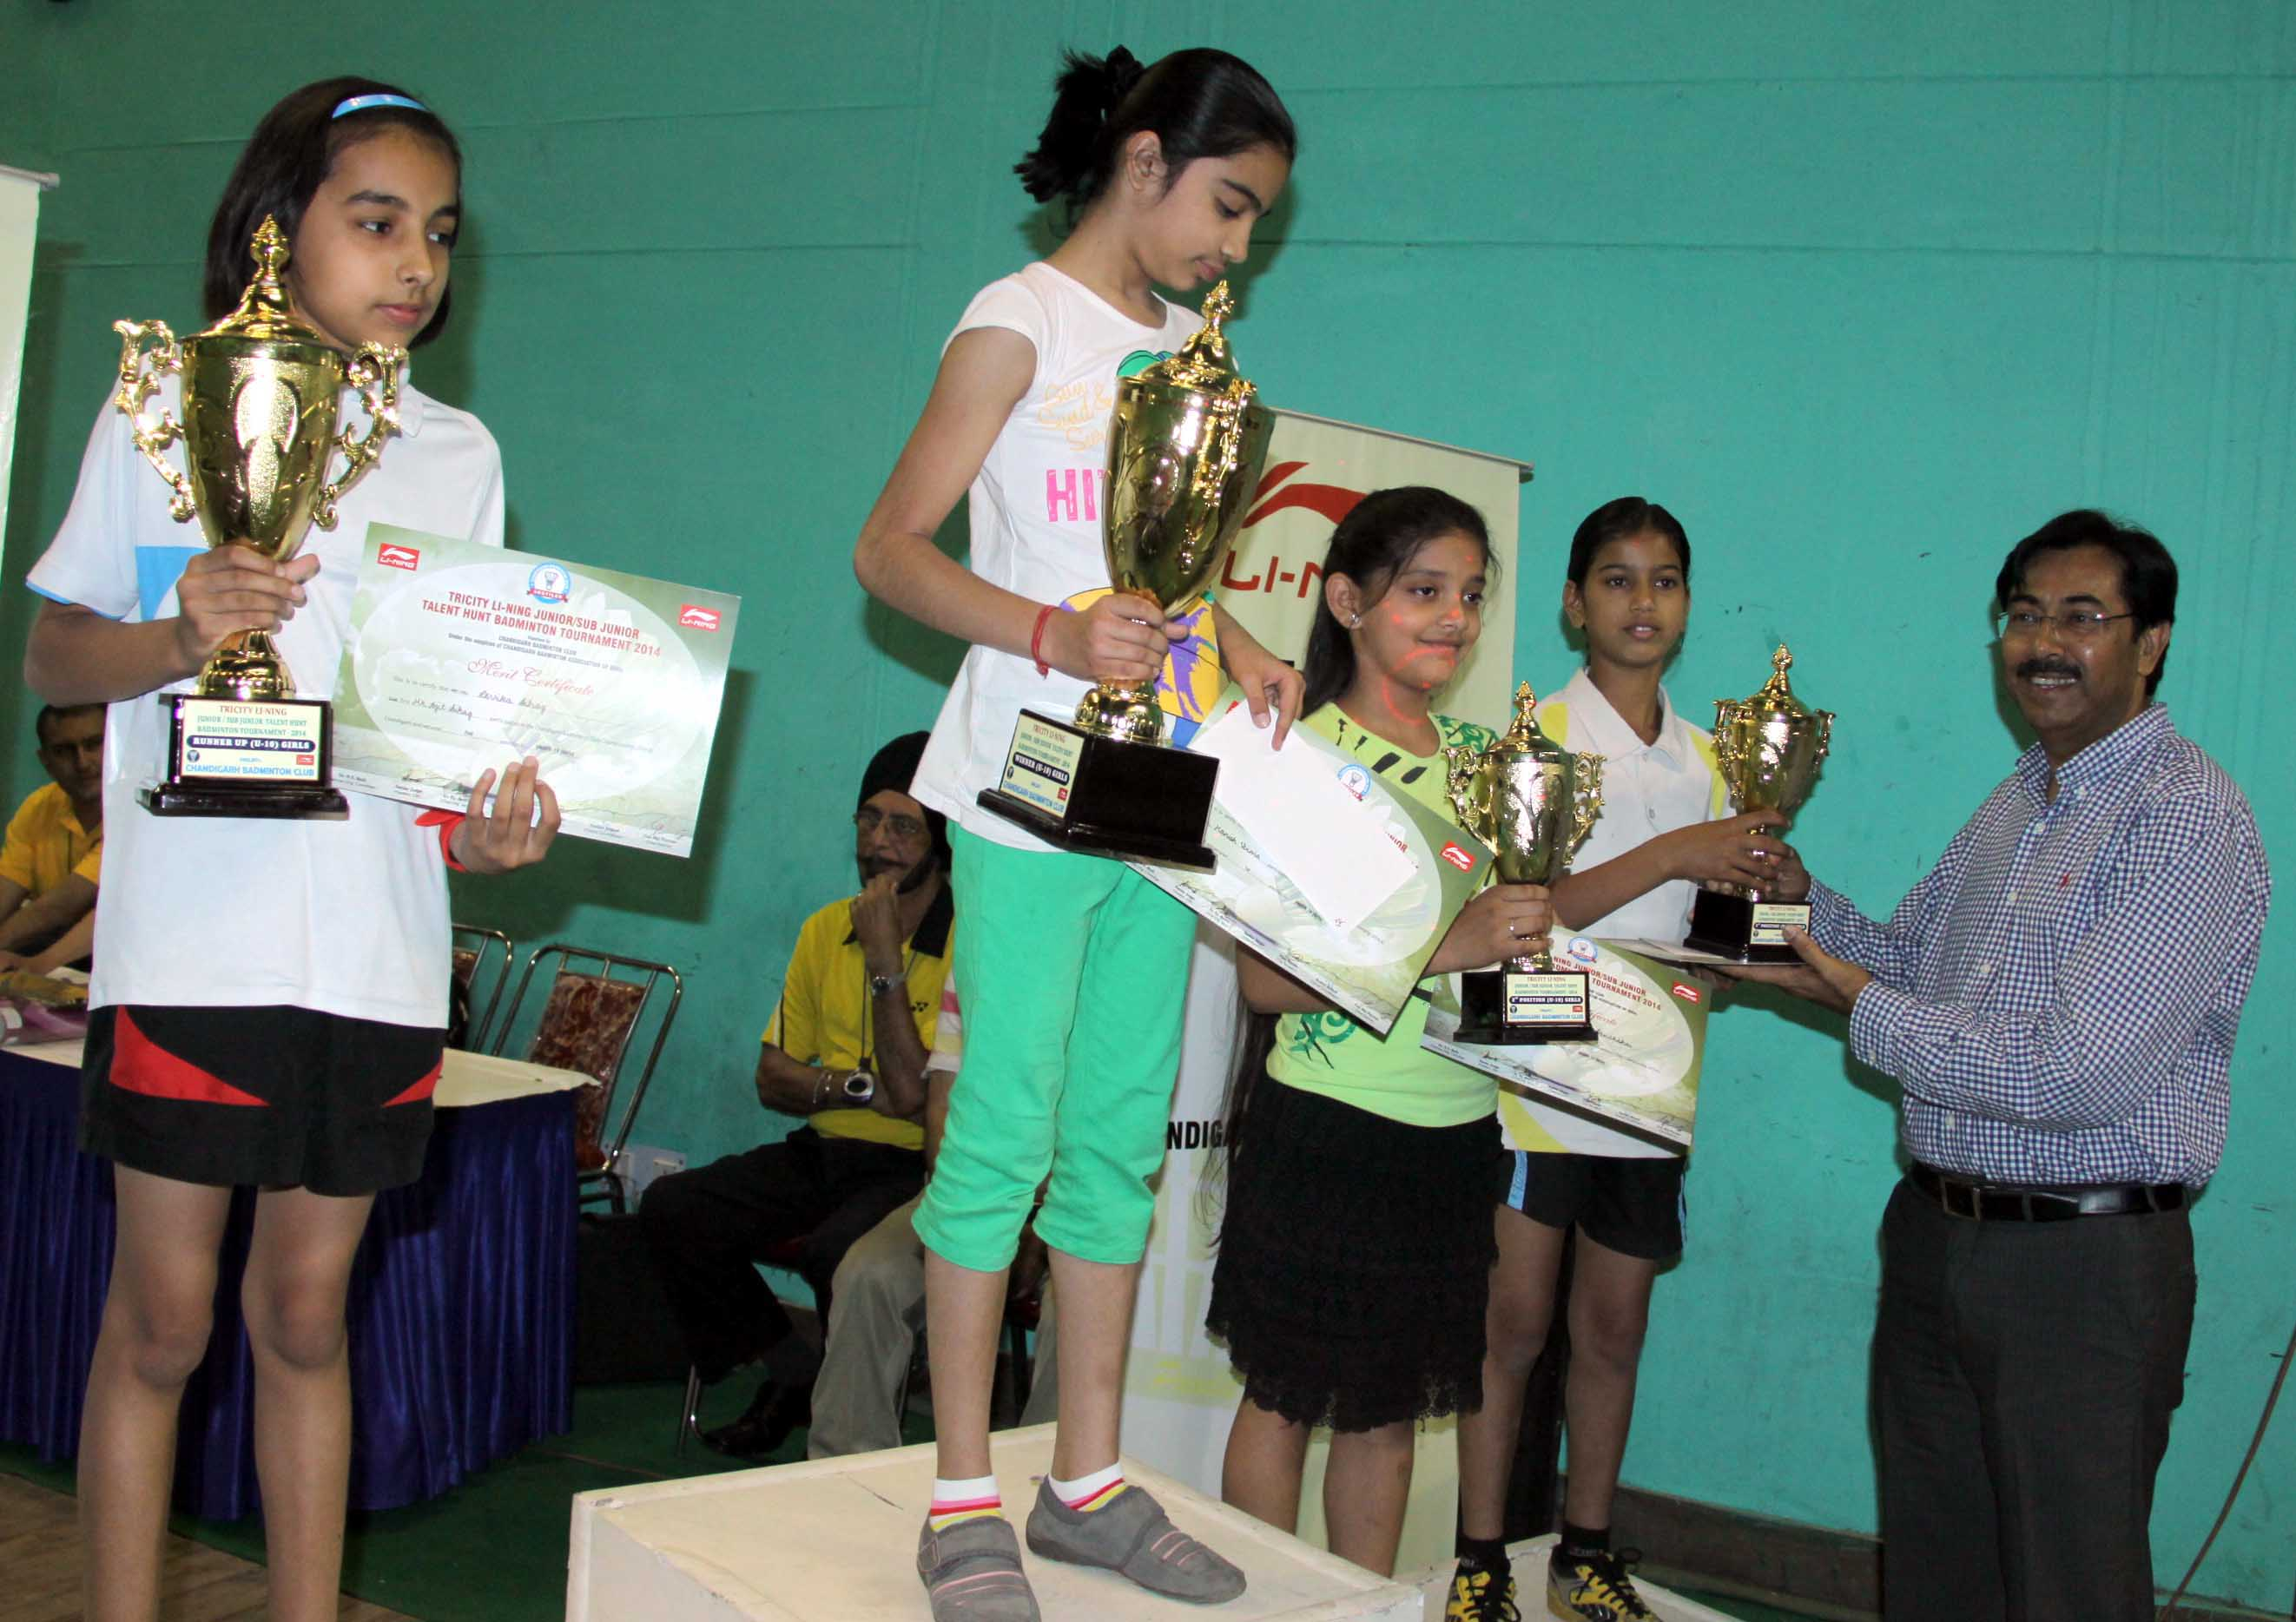 UT Home Secretary, Mr. Anil Kumar distributing prizes to the winners at the Closing Ceremony of Tricity Li-ning Junior/Sub Junior Talent Hunt Badminton Tournament-2014 at Sports Stadium, Sector-42, Chandigarh on Sunday, April 20, 2014.